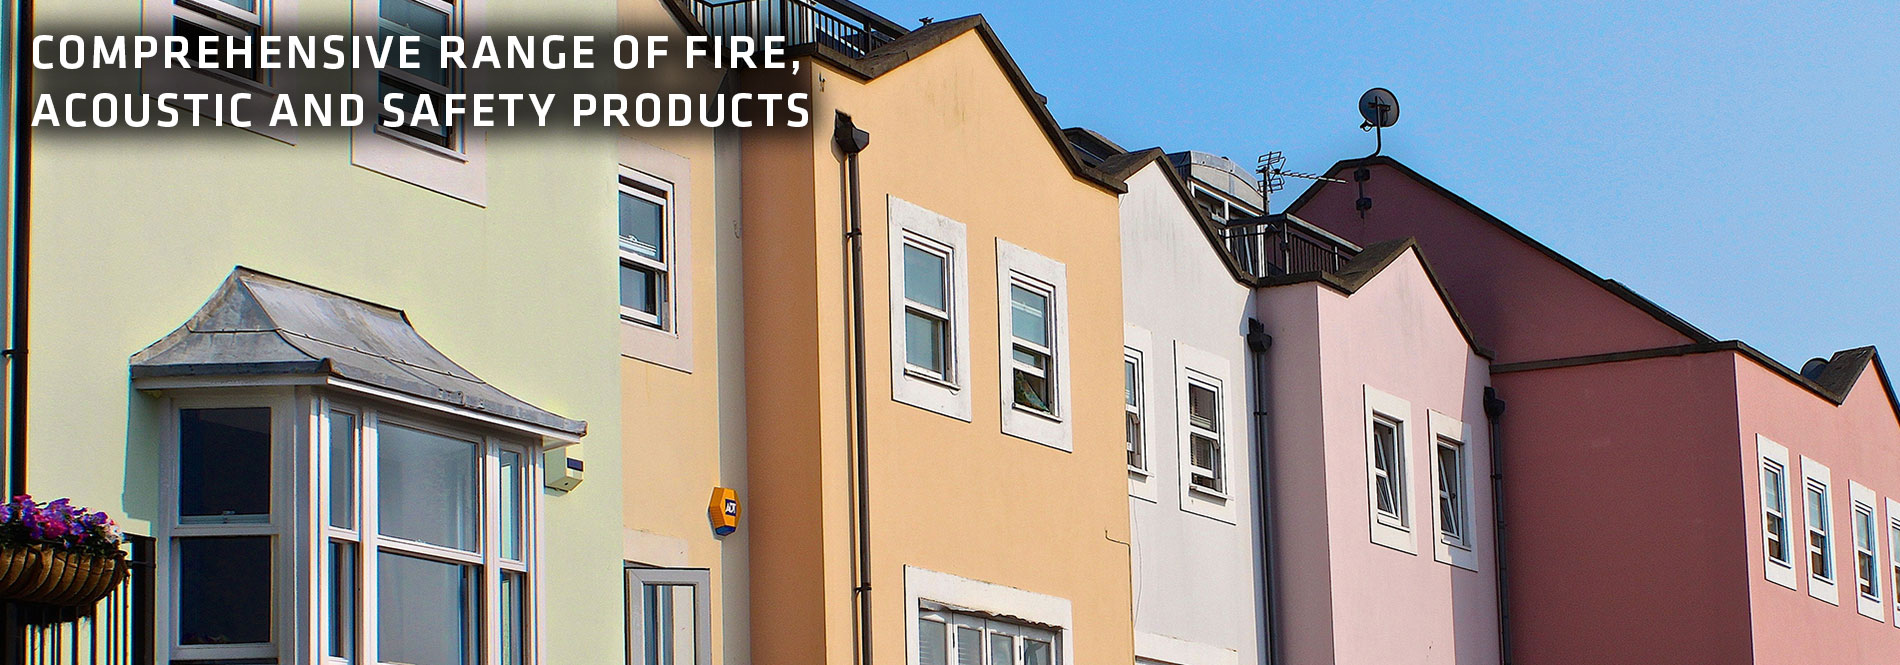 Astroflame - A Comprehensive range of fire, acoustic and safety products